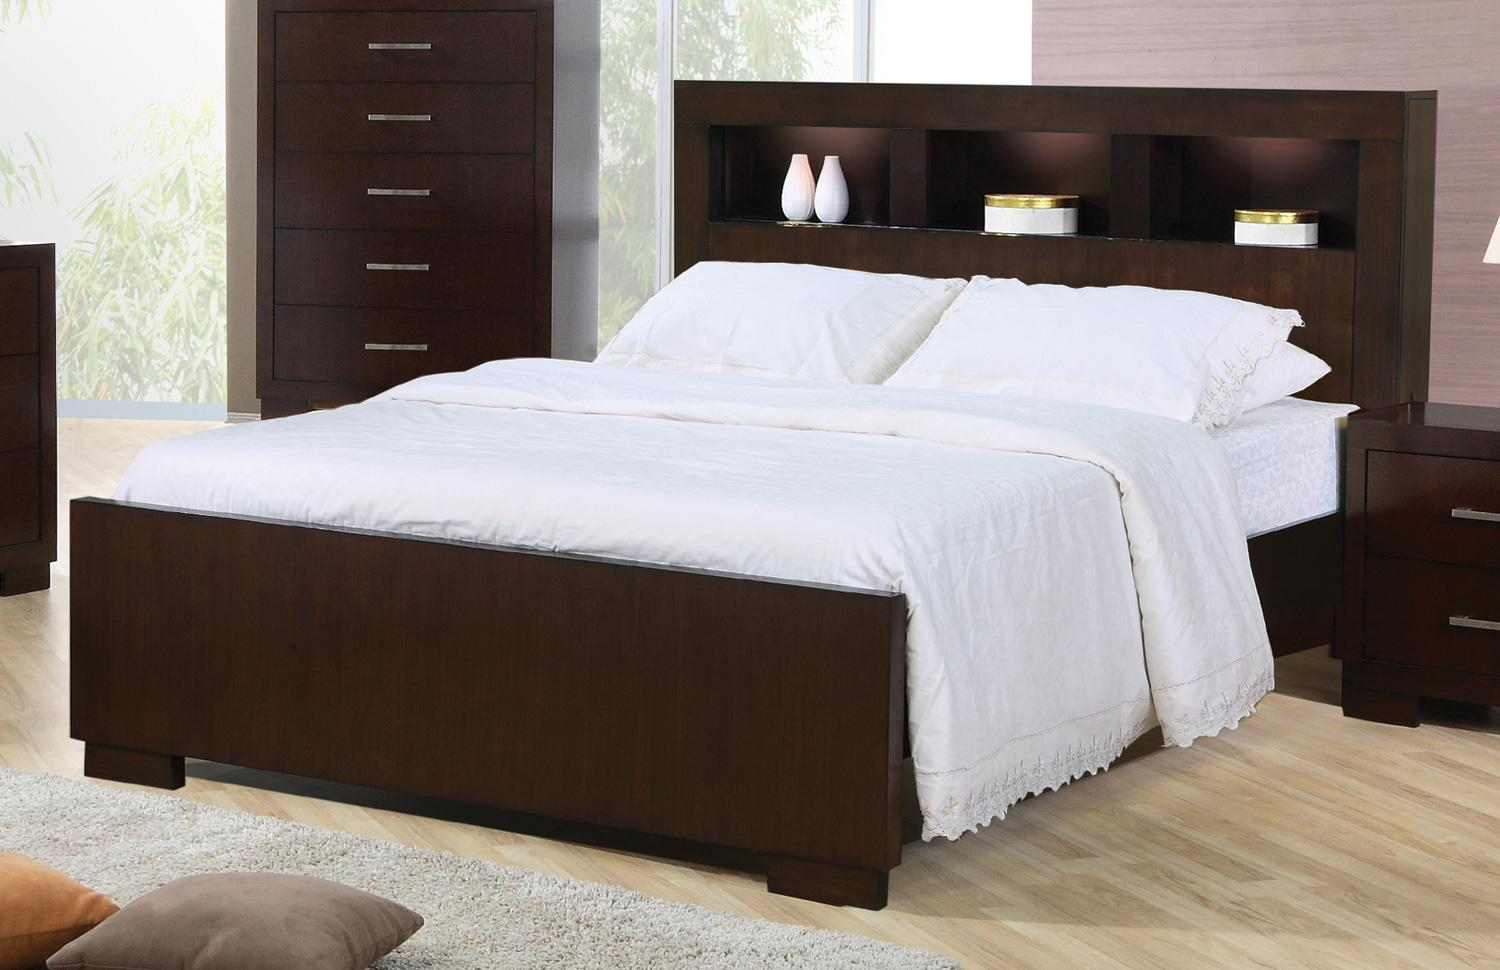 Coaster Jessica 200719ke King Contemporary Bed With Storage Headboard And Built In Lighting